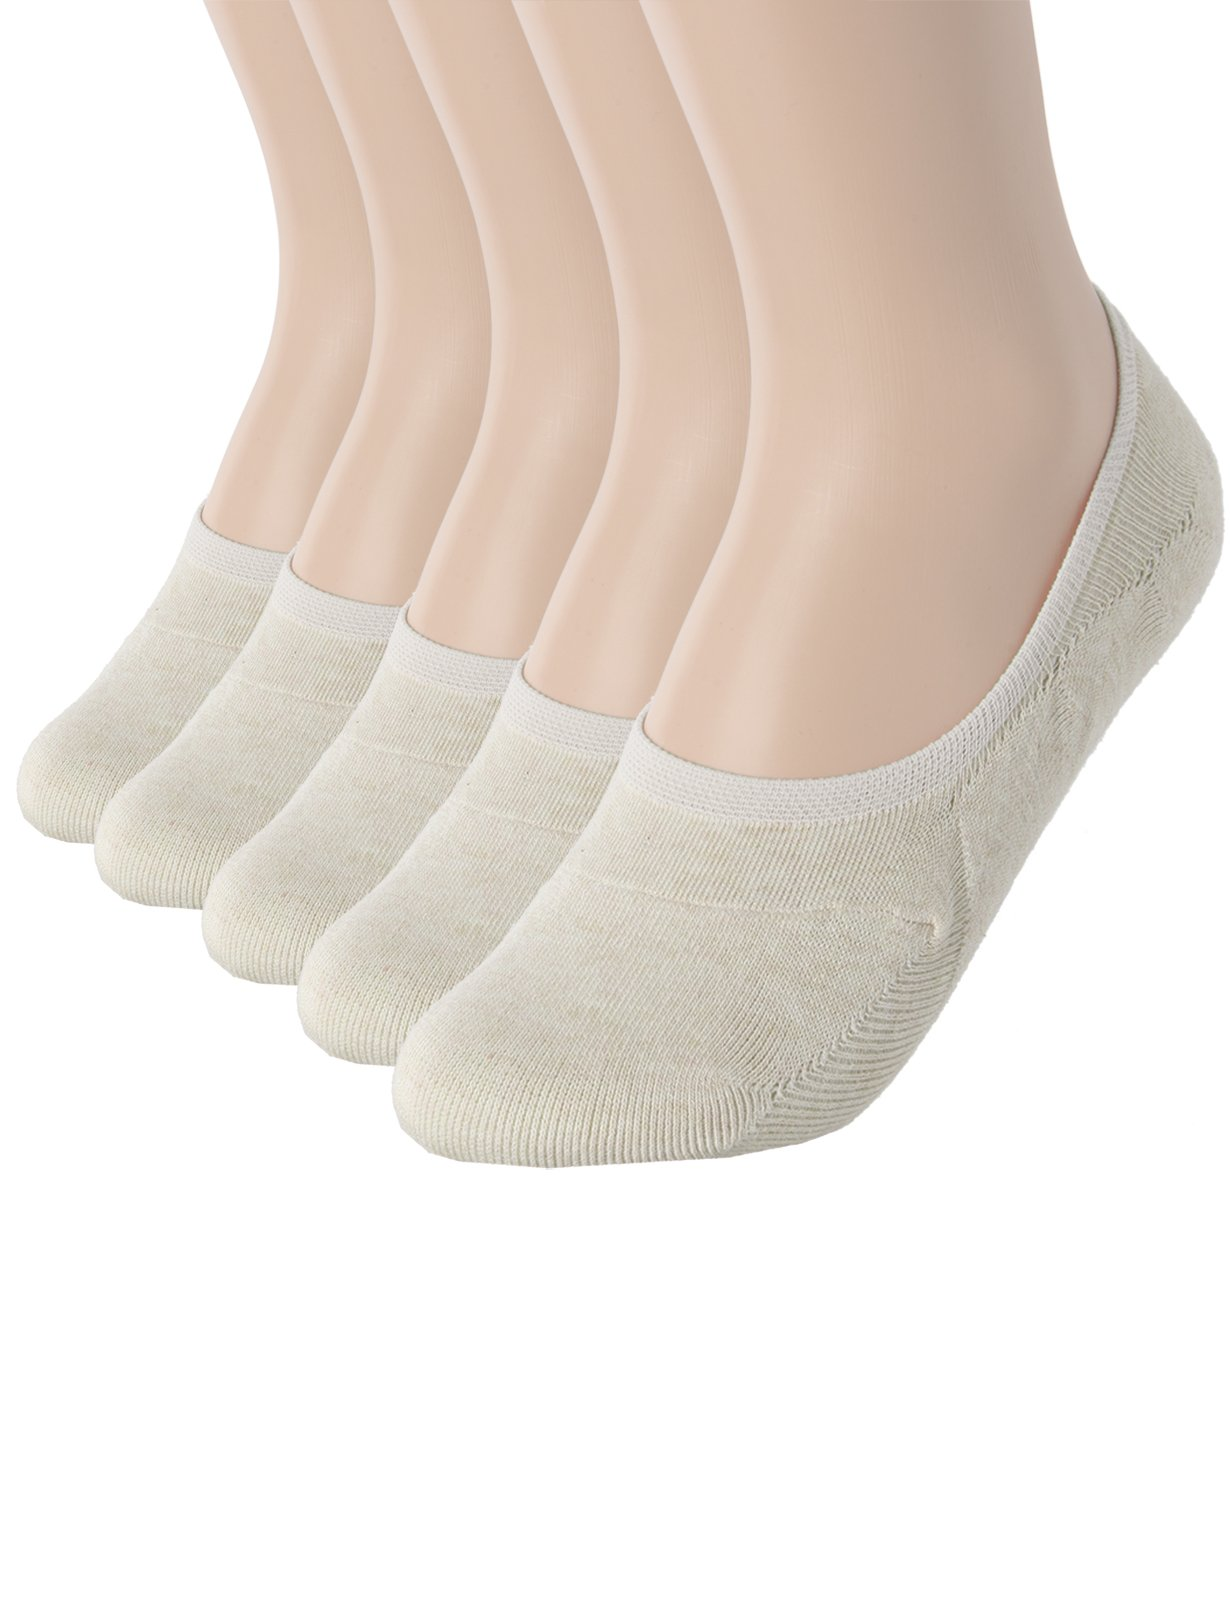 OSABASA Womens Casual No-Show 5Pairs Socks of Hidden Flat Boat Line BEIGE (SET5KWMS058)